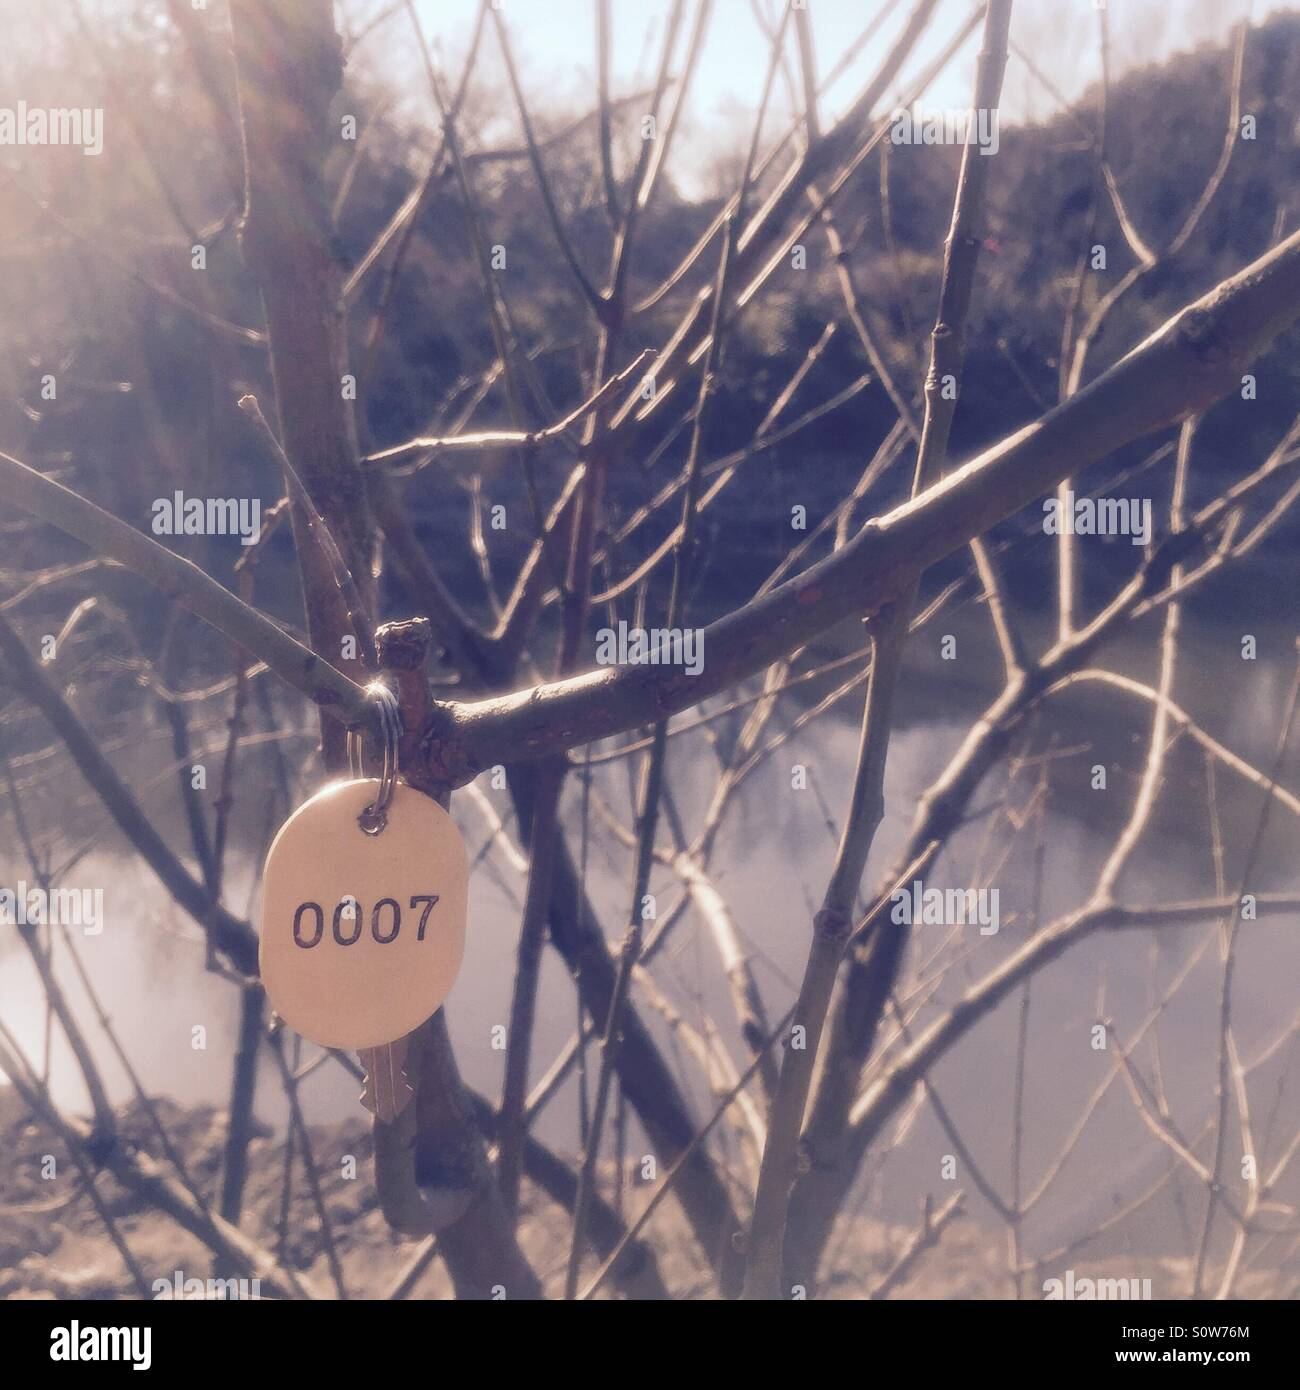 A stainless steel key on simple white oval keychain with the numbers 0007, hanging on a tree branch by the pond Stock Photo